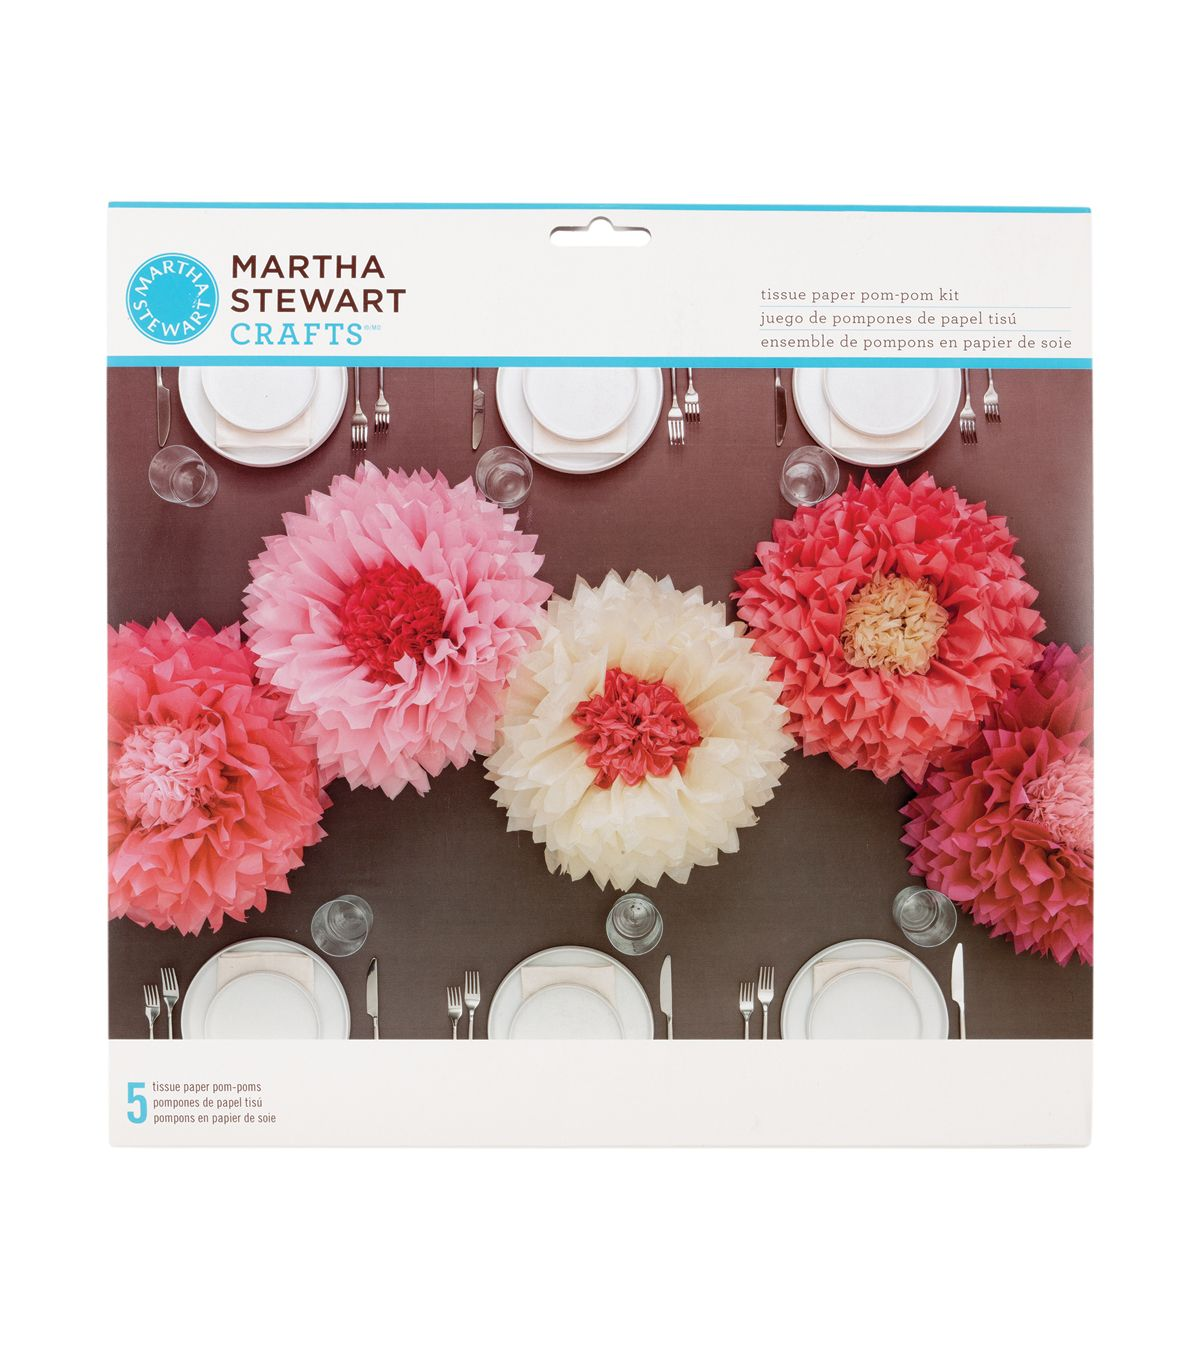 Tissue paper pom pom kit chrysanth flowersnull stuff for maanie tissue paper pom pom kit chrysanth flowersnull mightylinksfo Image collections